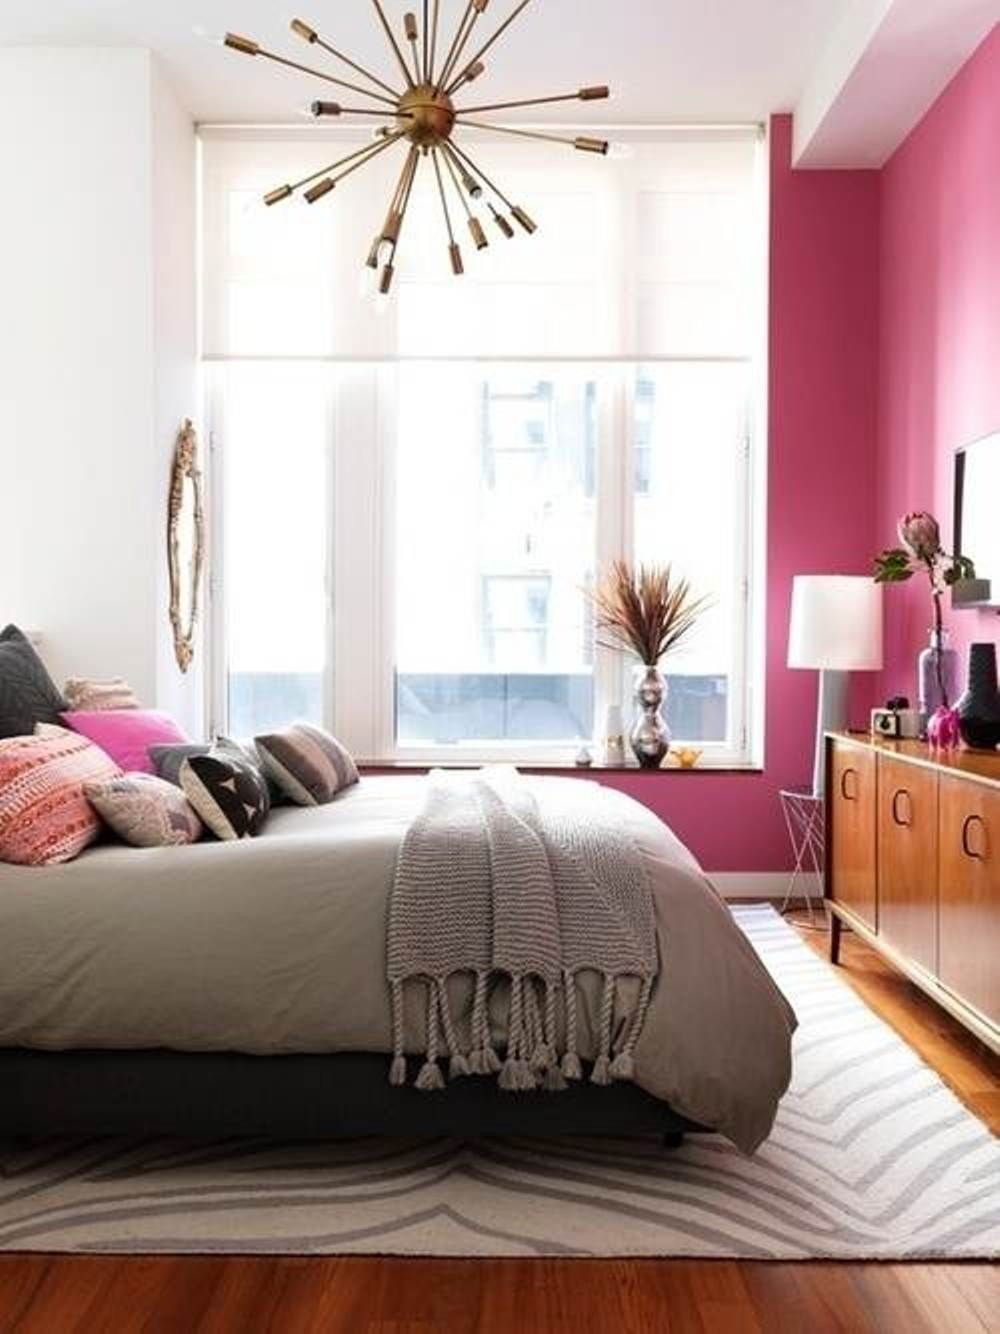 Pink Bedroom Decorating Ideas.Pink Bedroom Decorating Ideas For Women Home Bedroom Home